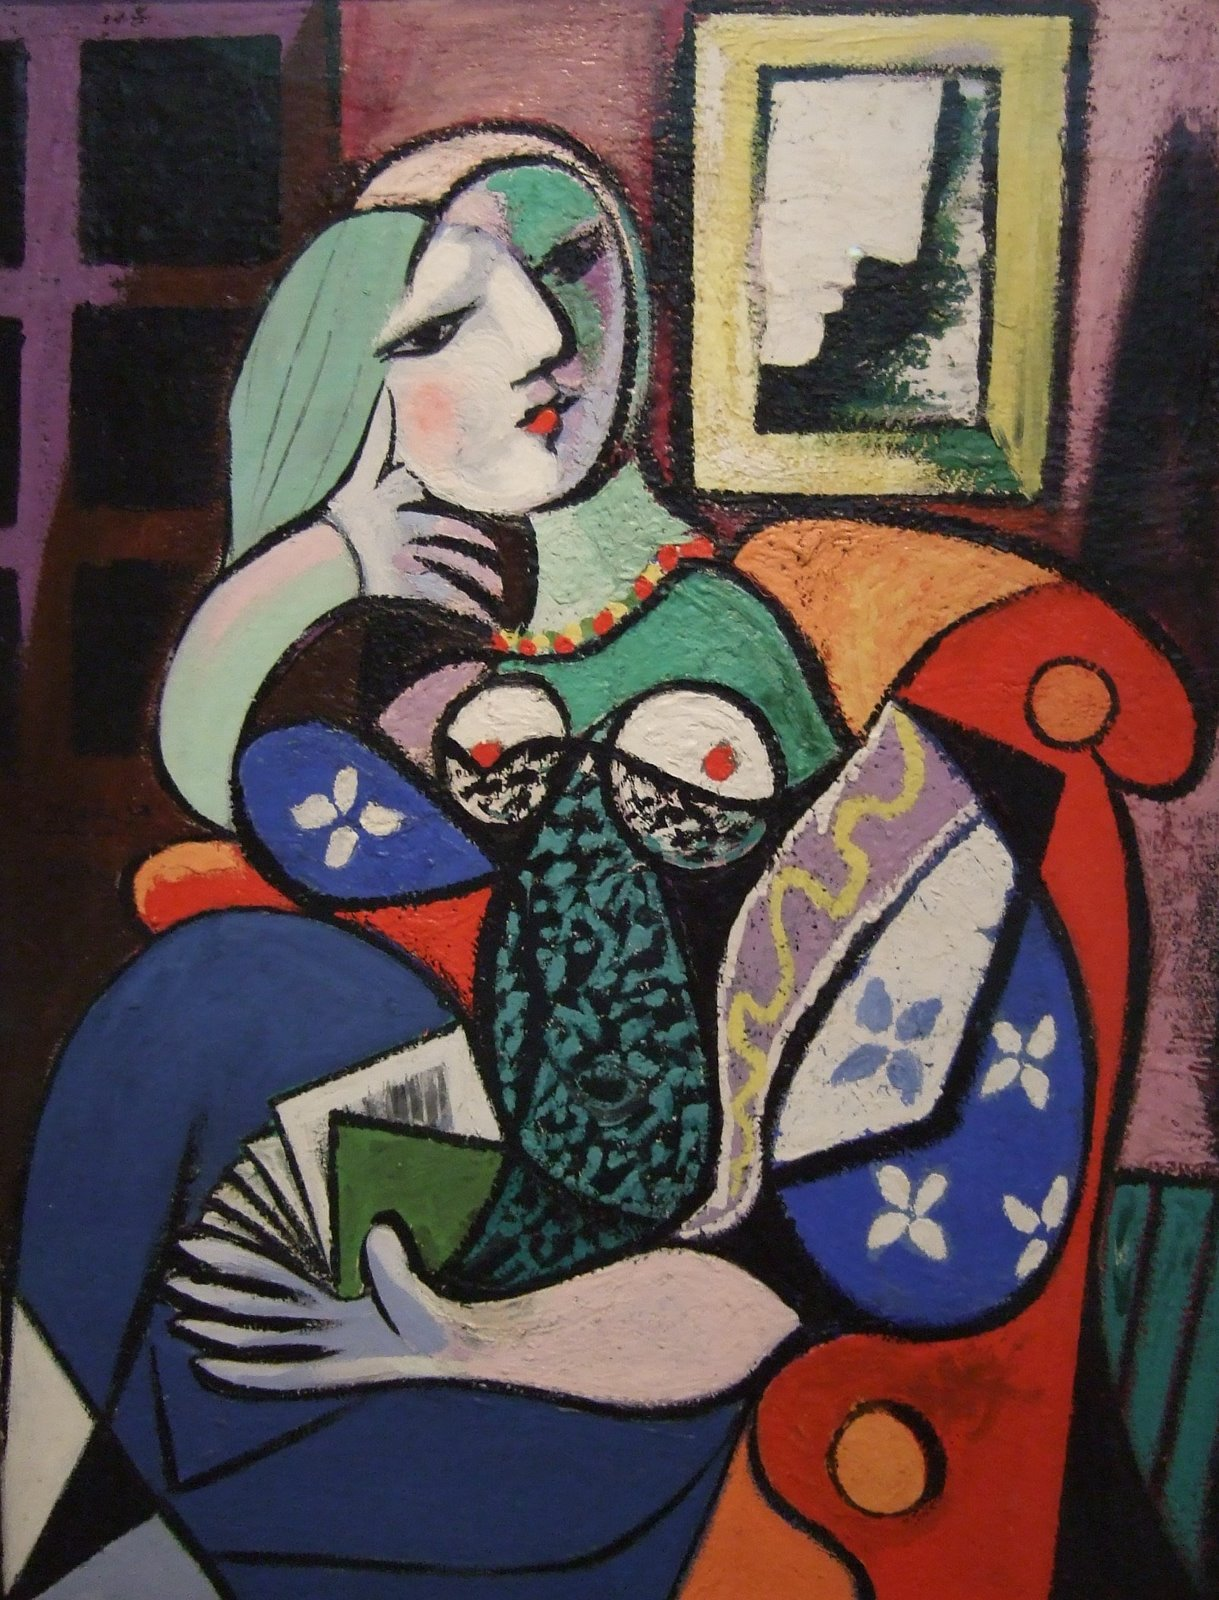 Picasso Cubist Faces Picasso paintings